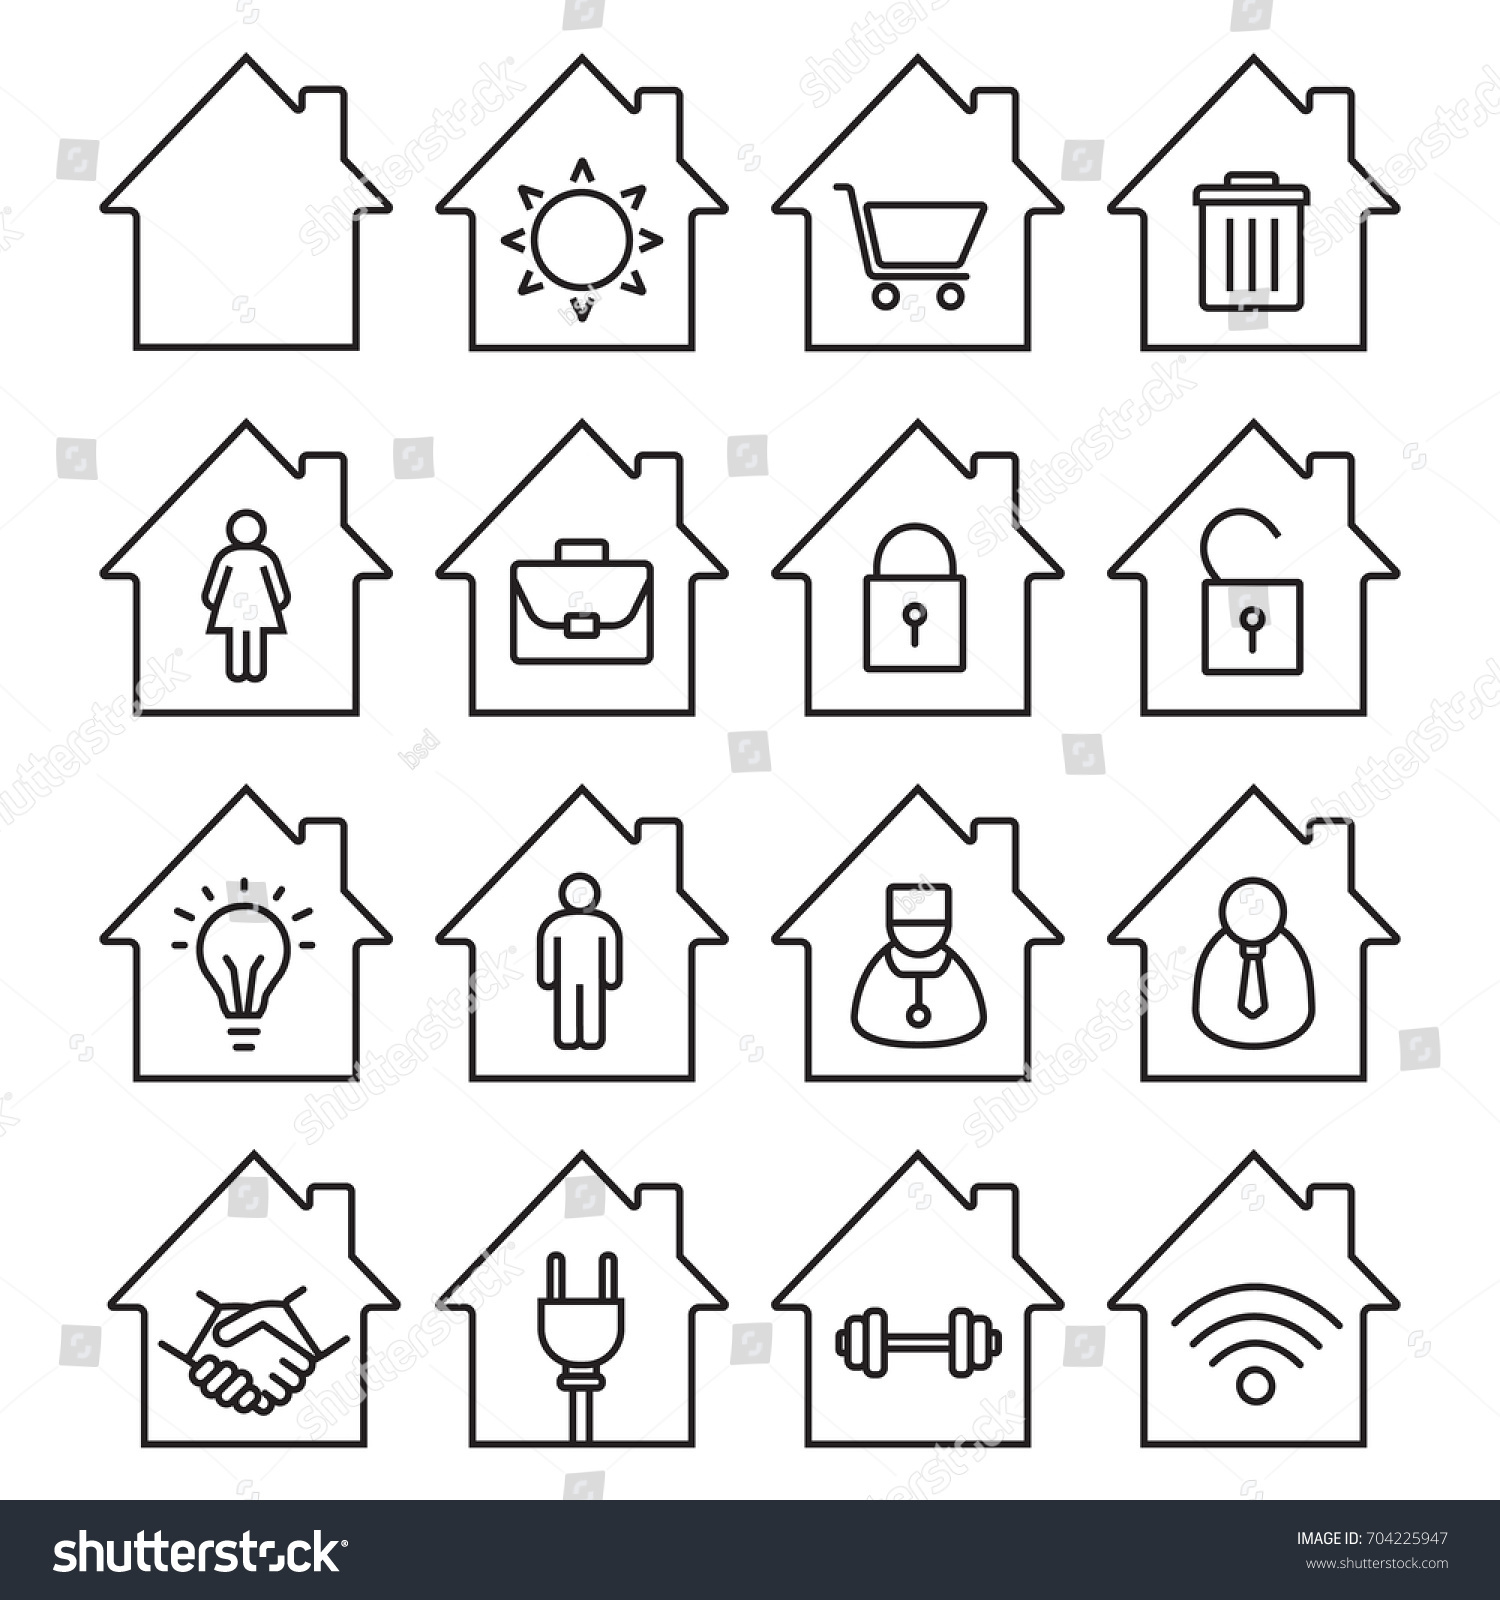 Houses Linear Icons Set Thin Line Stock Vector HD (Royalty Free ...